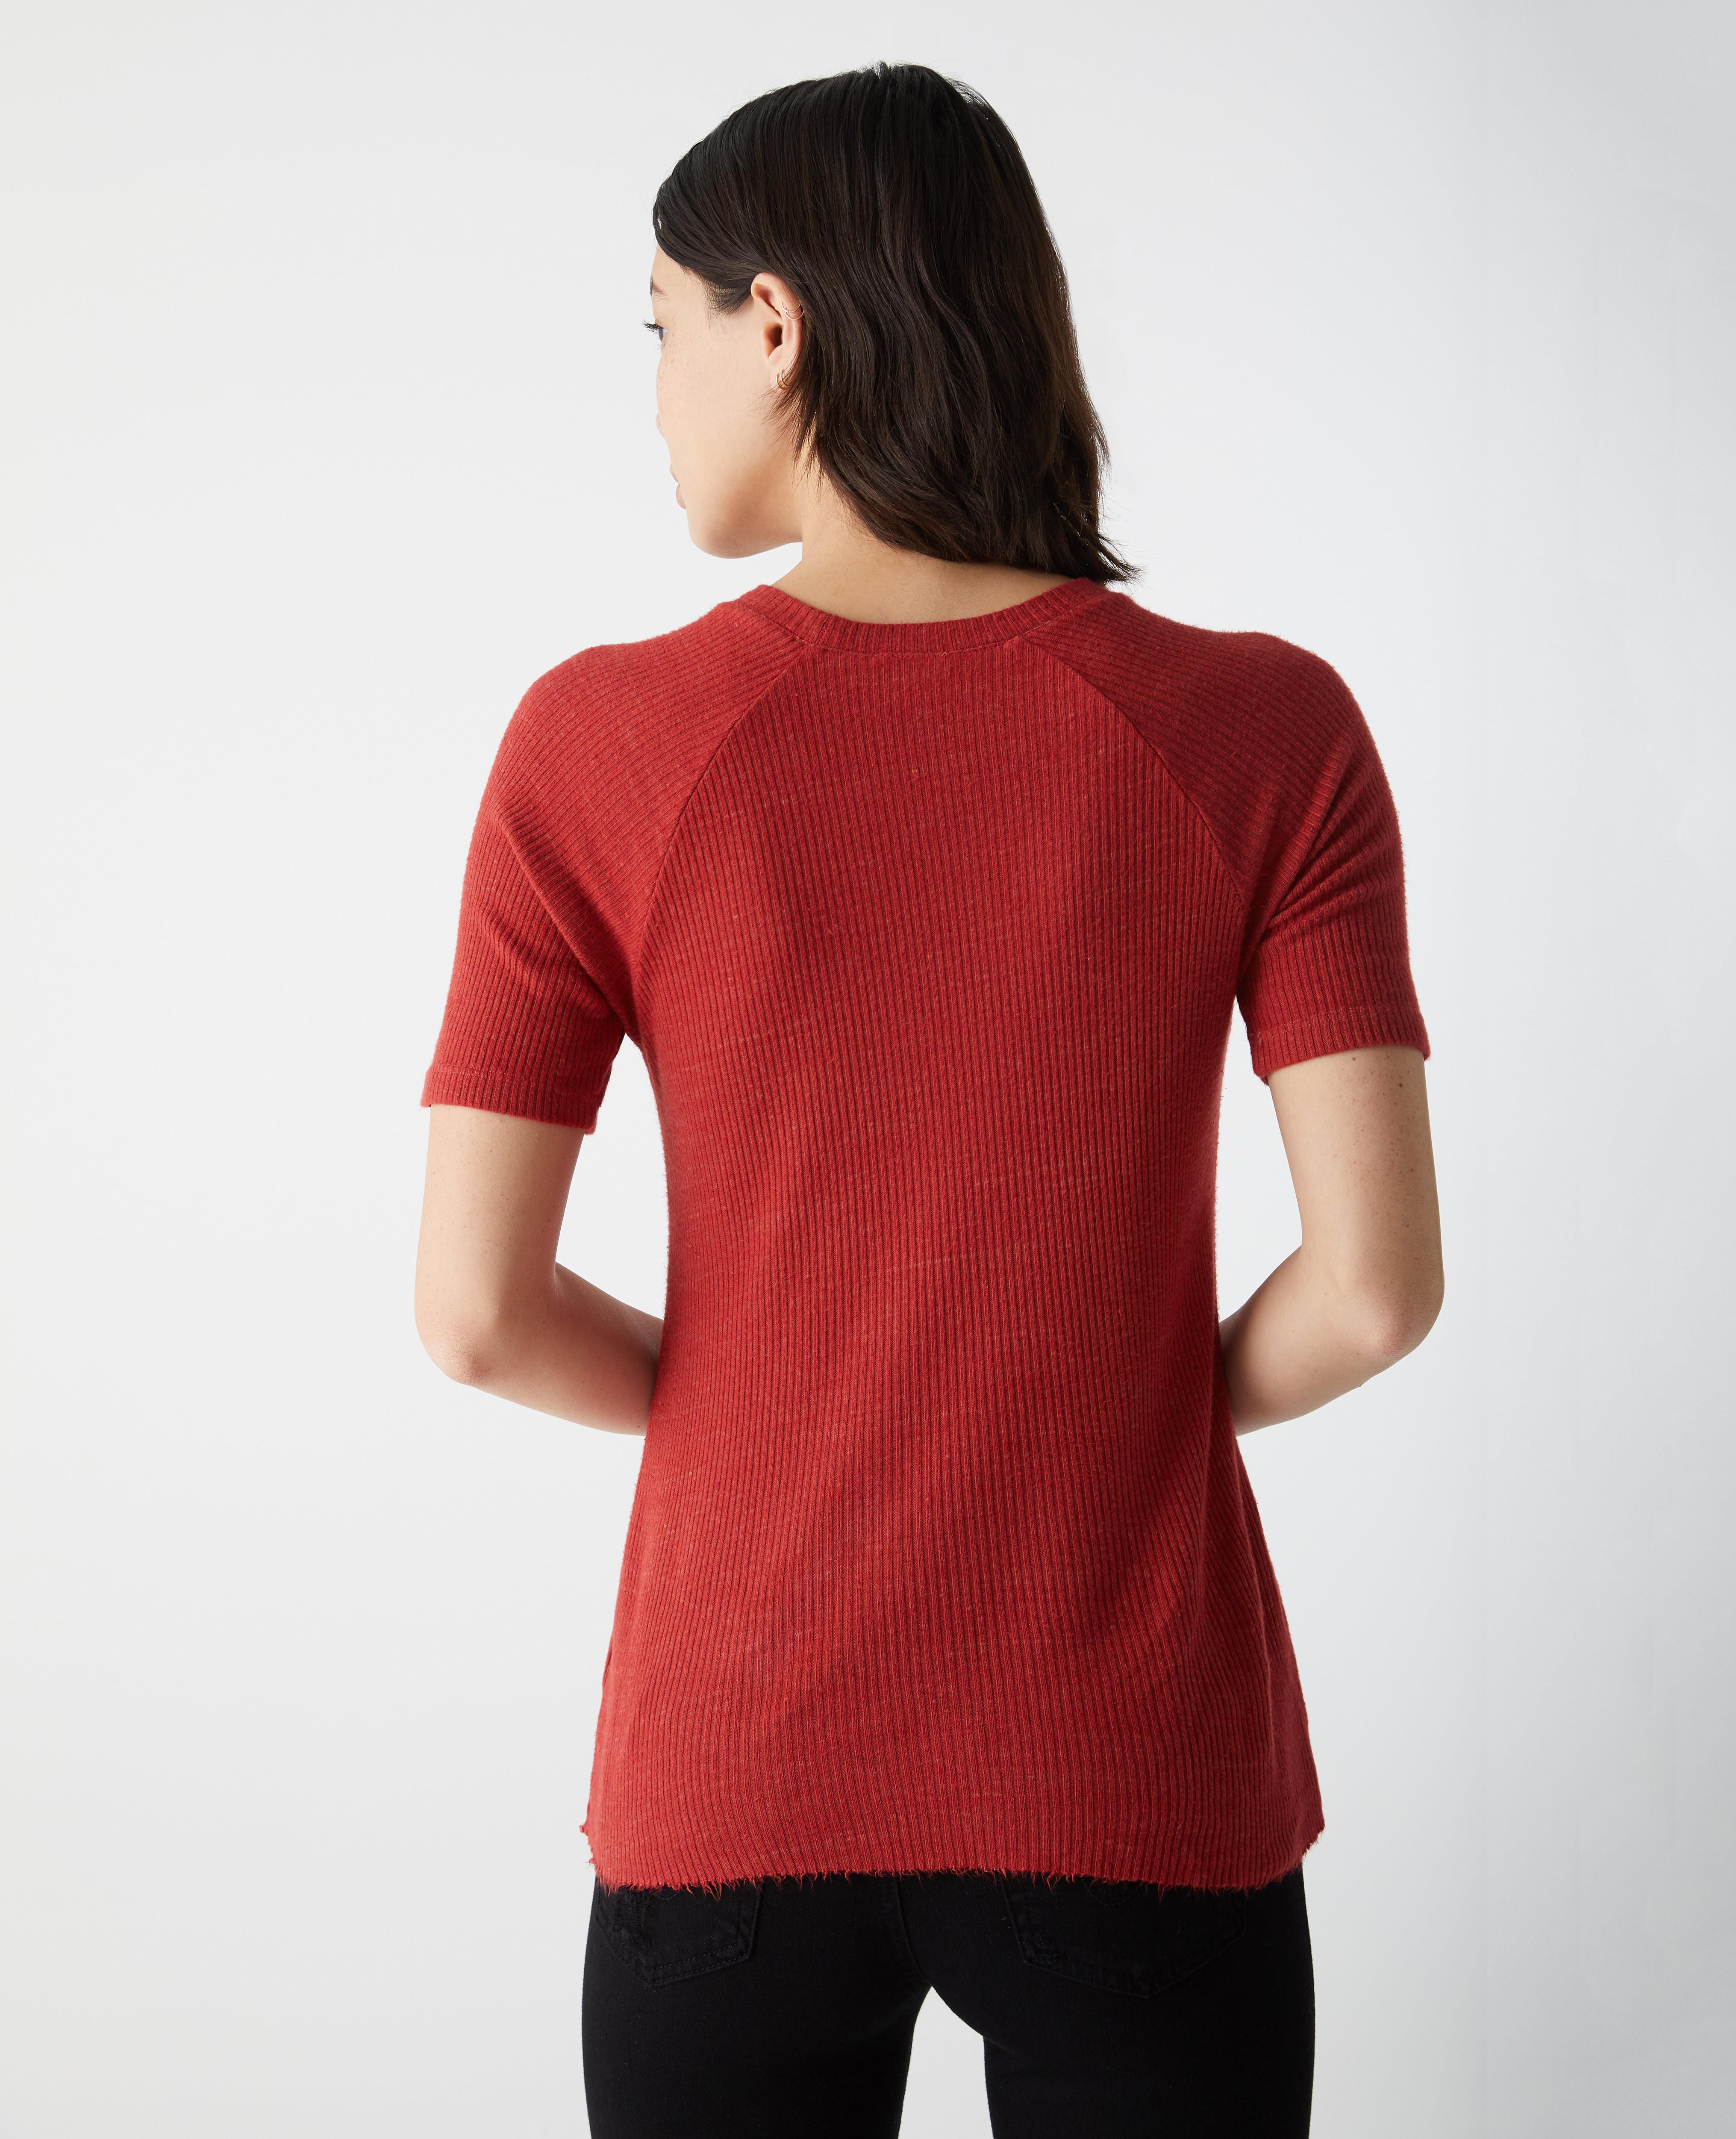 The Irene Raglan Tee